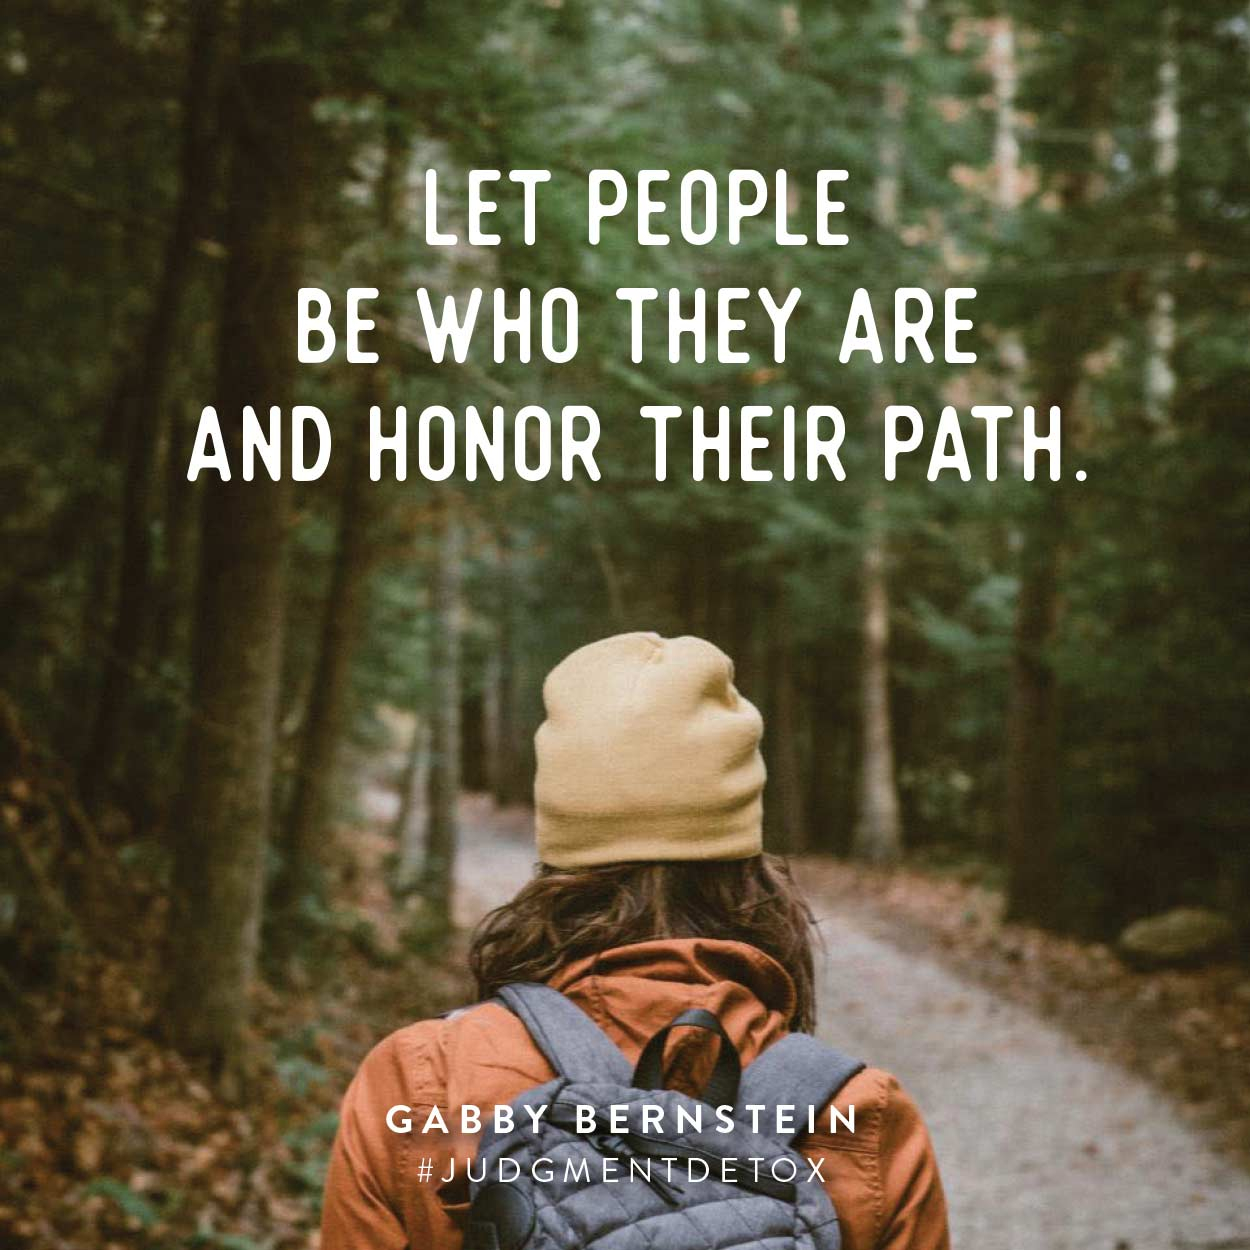 Let people be who they are and honor their path